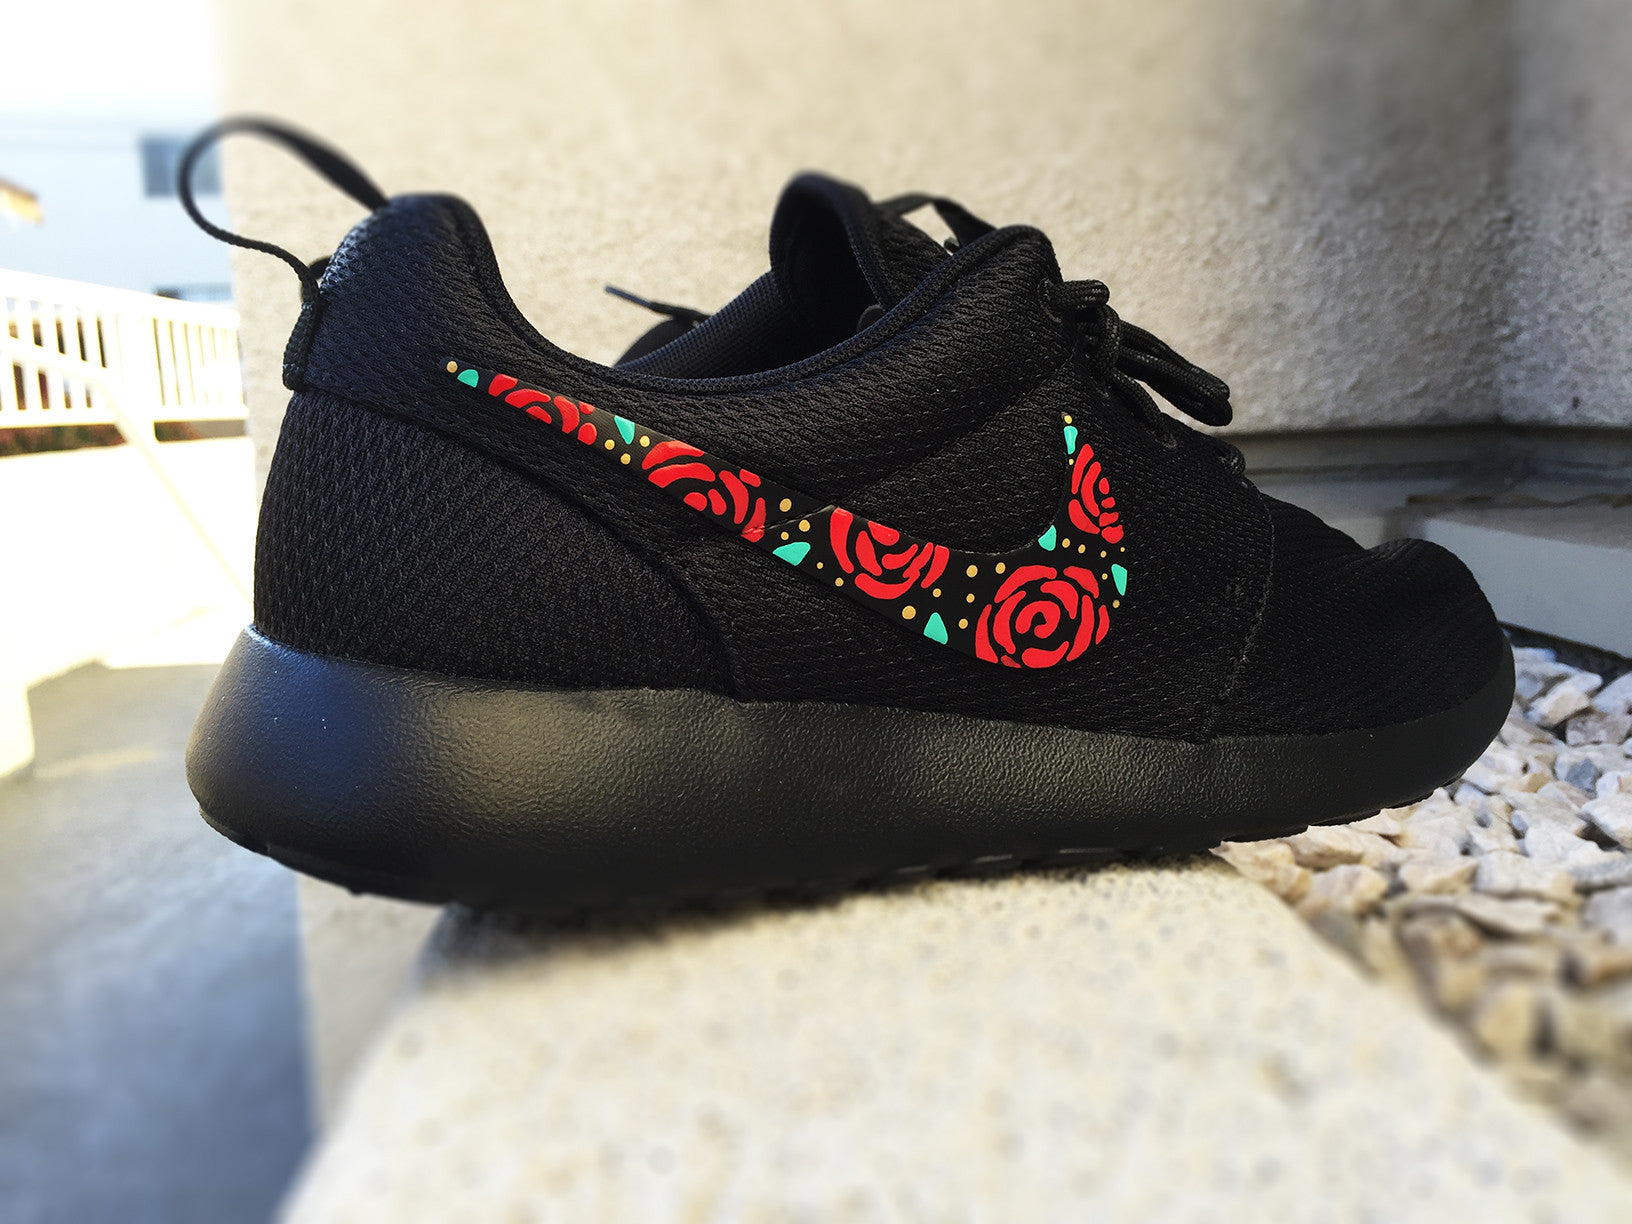 online store 9b0ab f4b7a Nike Roshe Custom Design, Floral Design, Roses, Hand Painted, Gold  Speckles, Red and Gold with Teal Accent, Custom Roshe Run, women and men